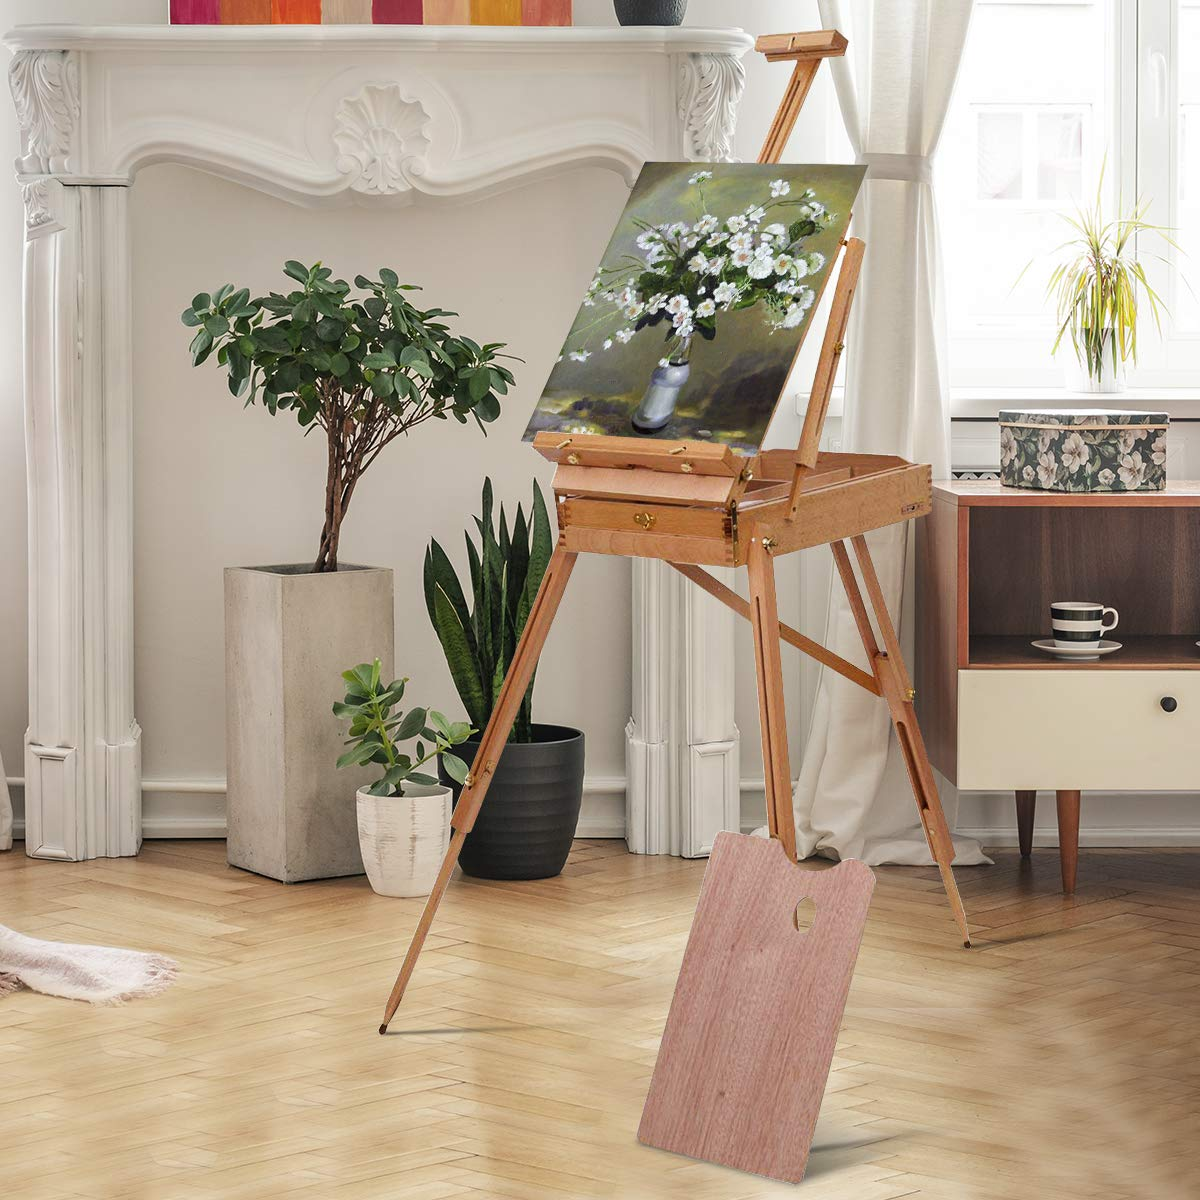 Tangkula Wooden French Easel Stand with Sketch Box, Drawer & Palette Foldable Folding Portable Easel Case with Shoulder Strap Solid Beech Wood Construction Art Easel by Tangkula